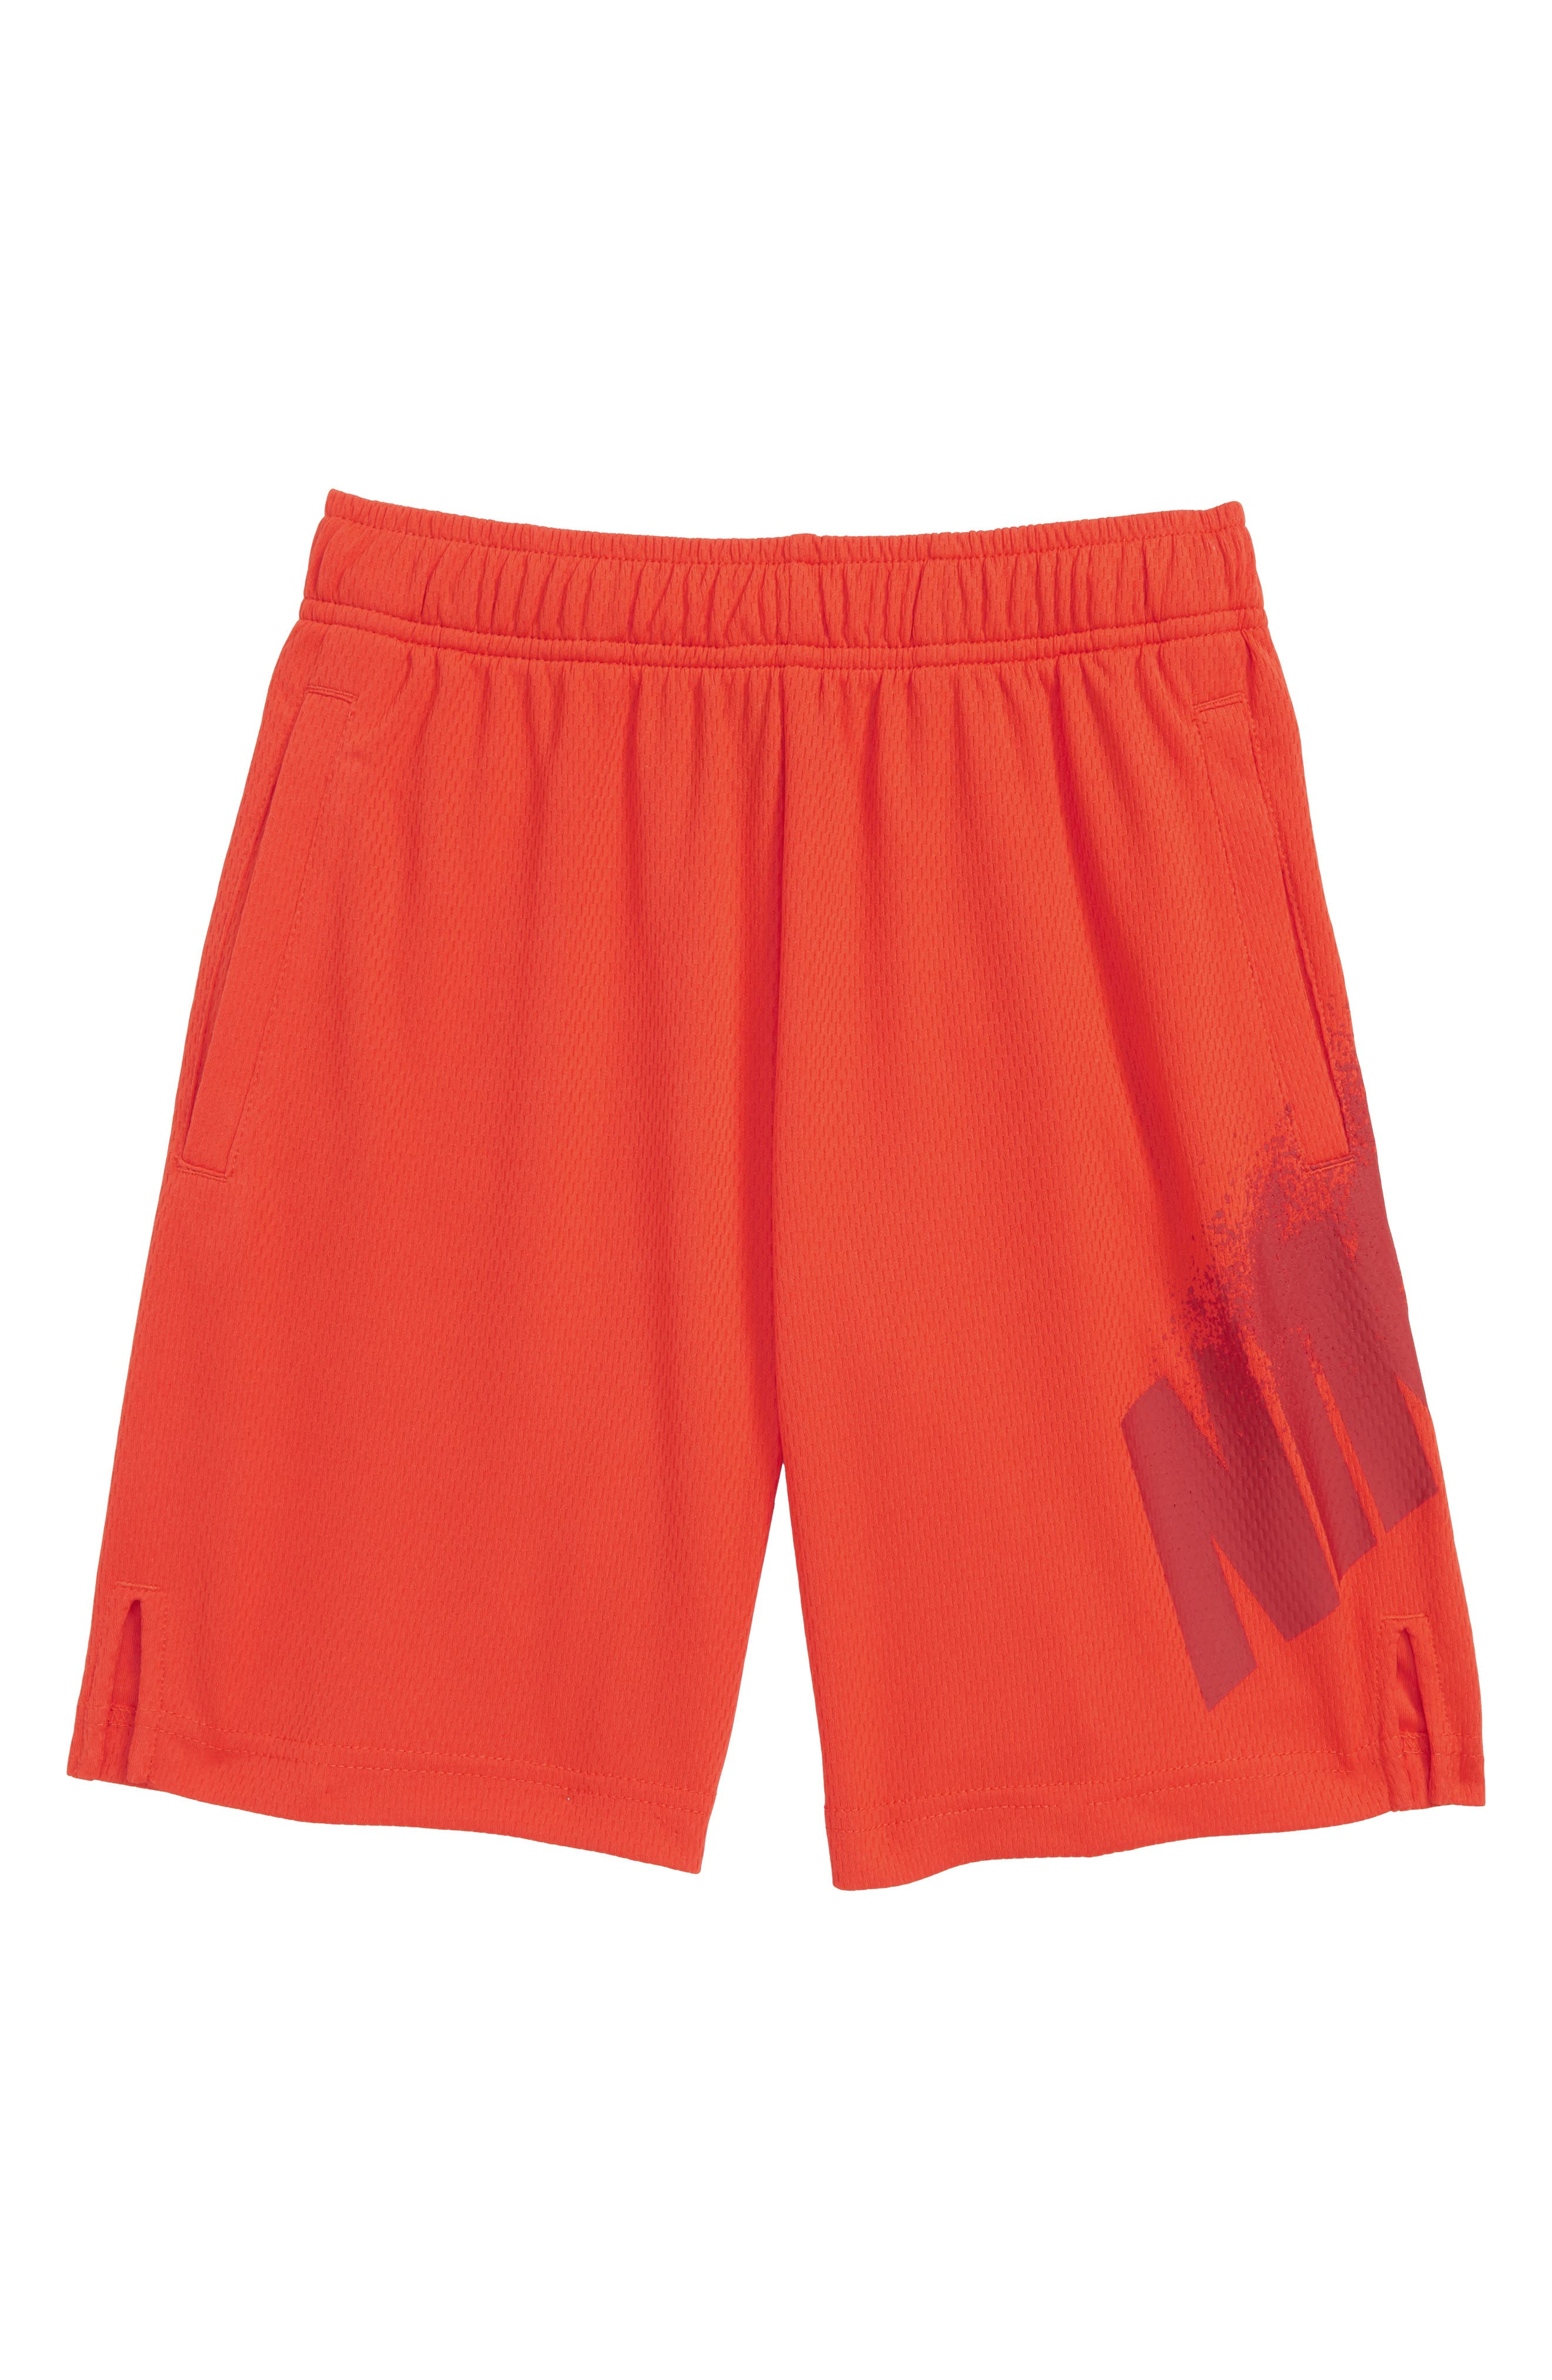 Dry GFX Athletic Shorts,                         Main,                         color, HABANERO RED/ GYM RED